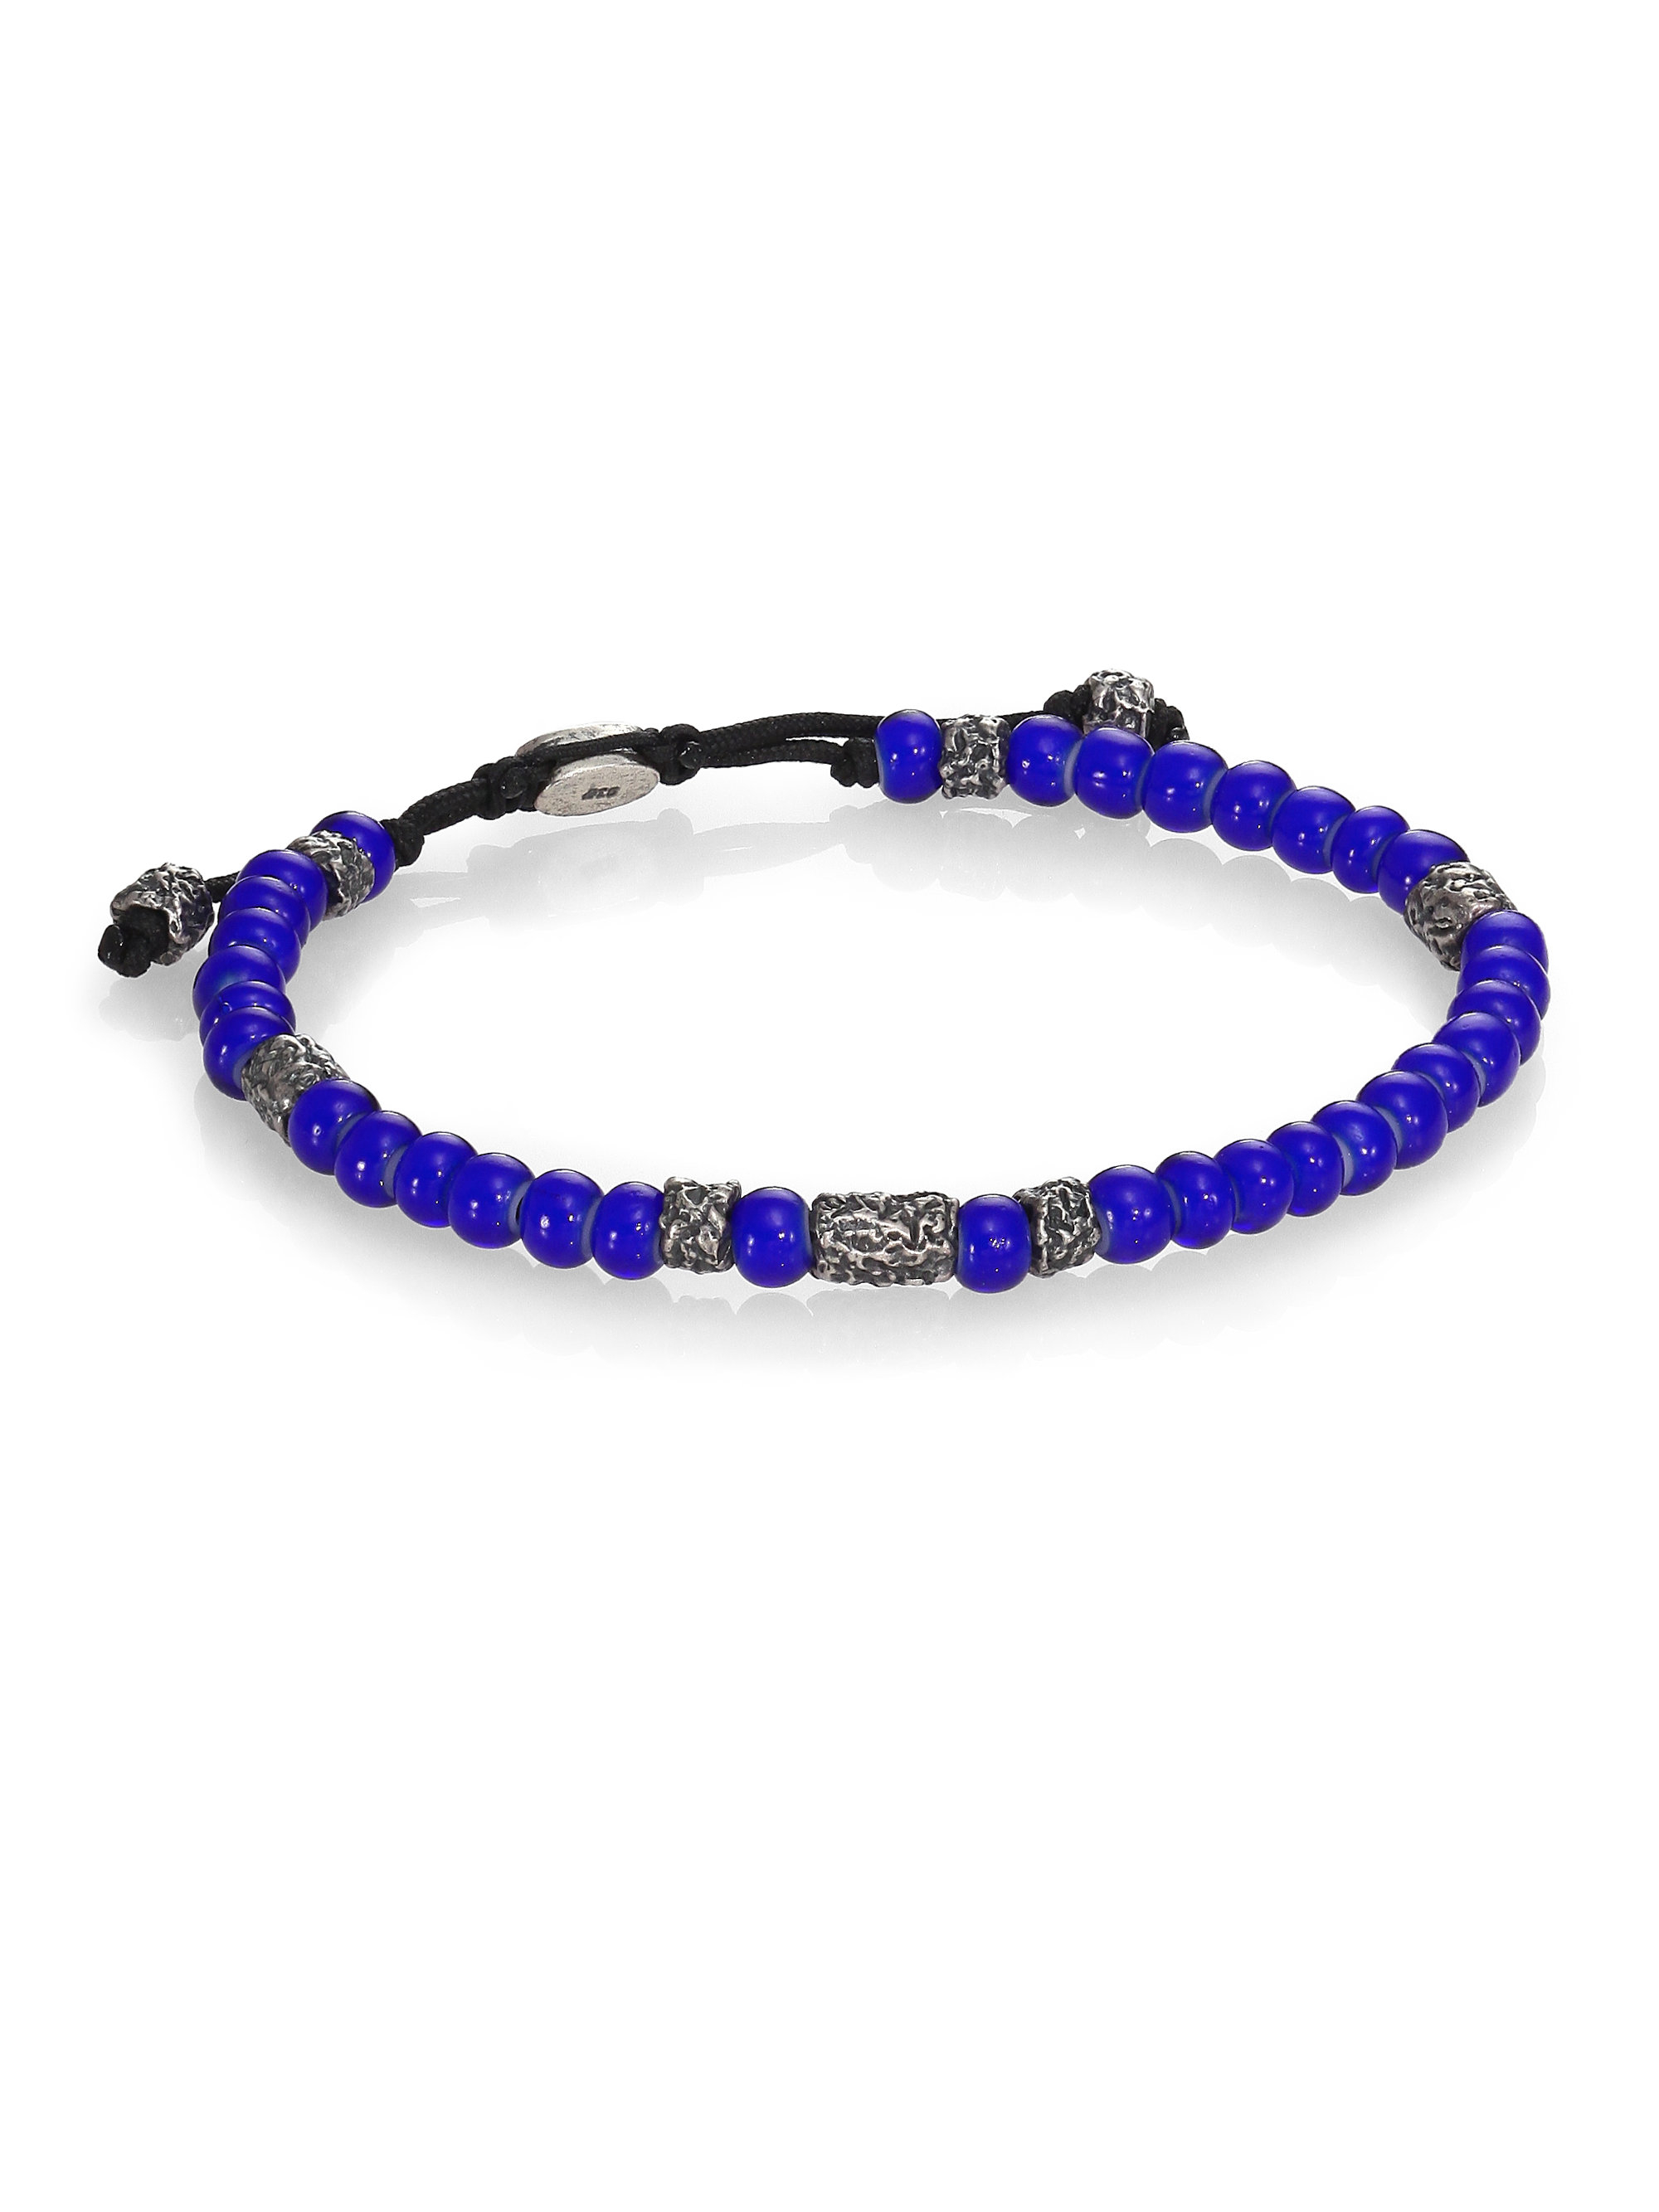 M. cohen African Beads Stacked Bracelet in Blue | Lyst